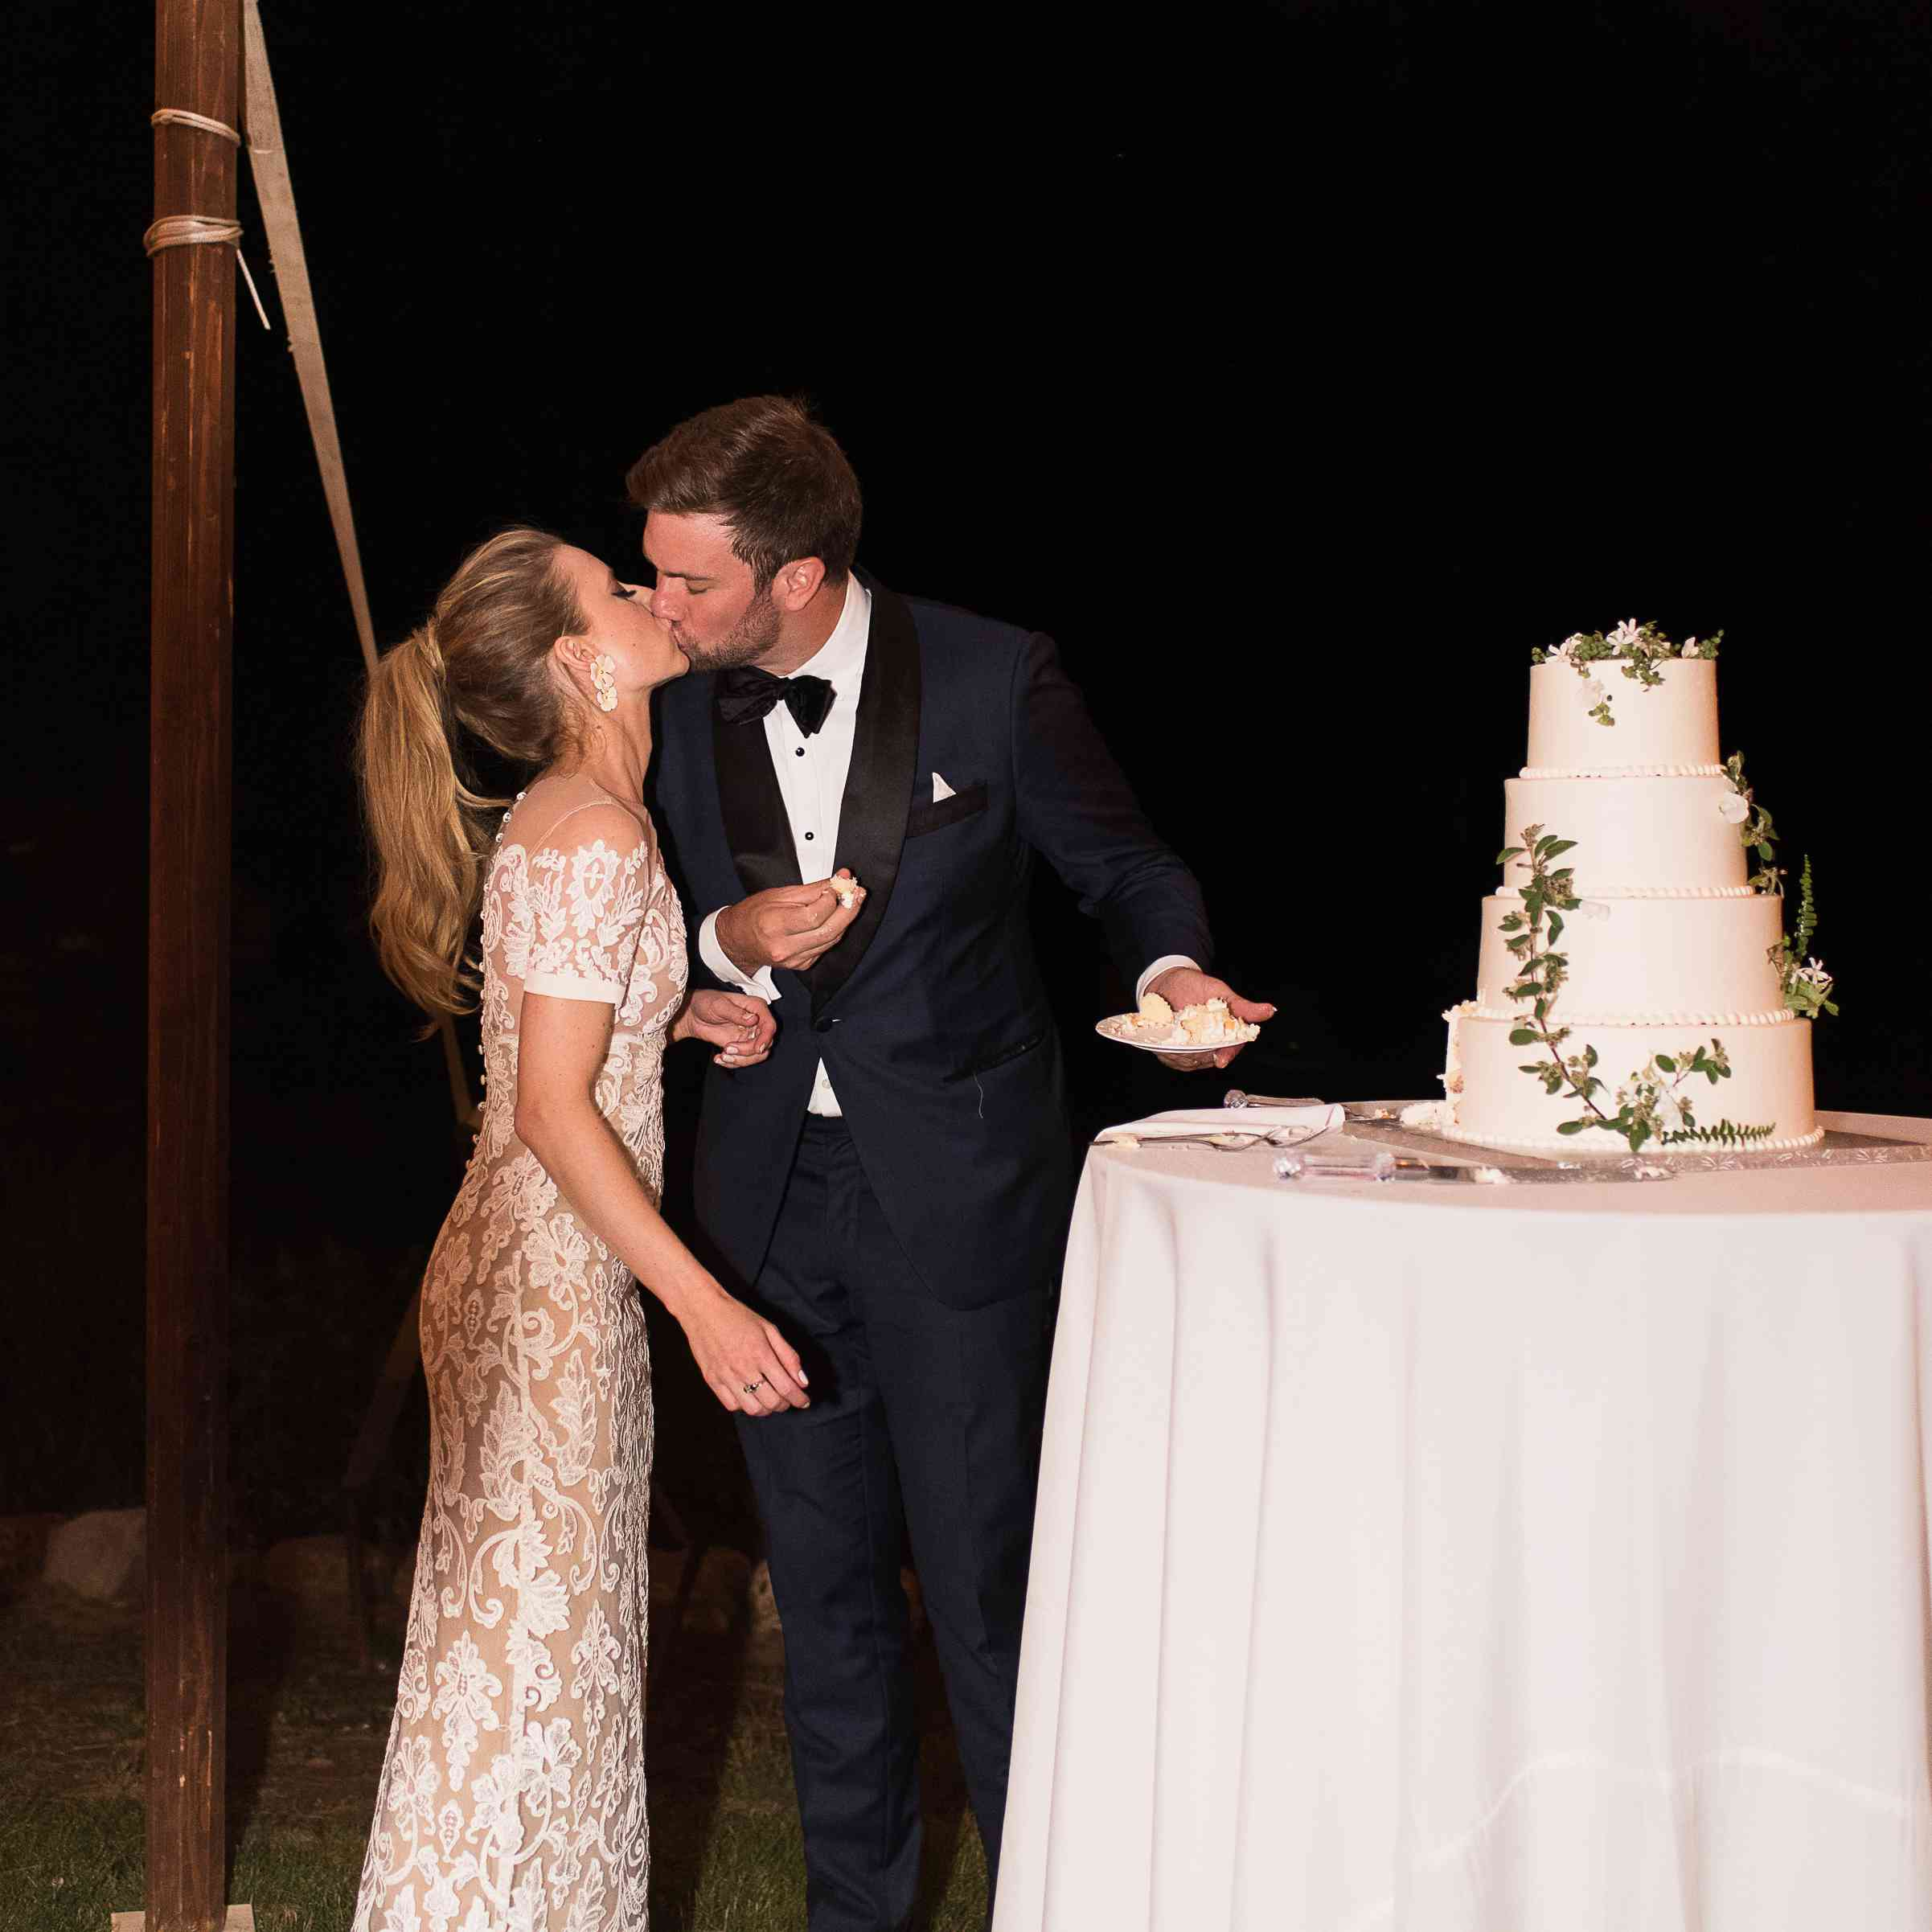 <p>Bride and groom cutting cake</p><br><br>